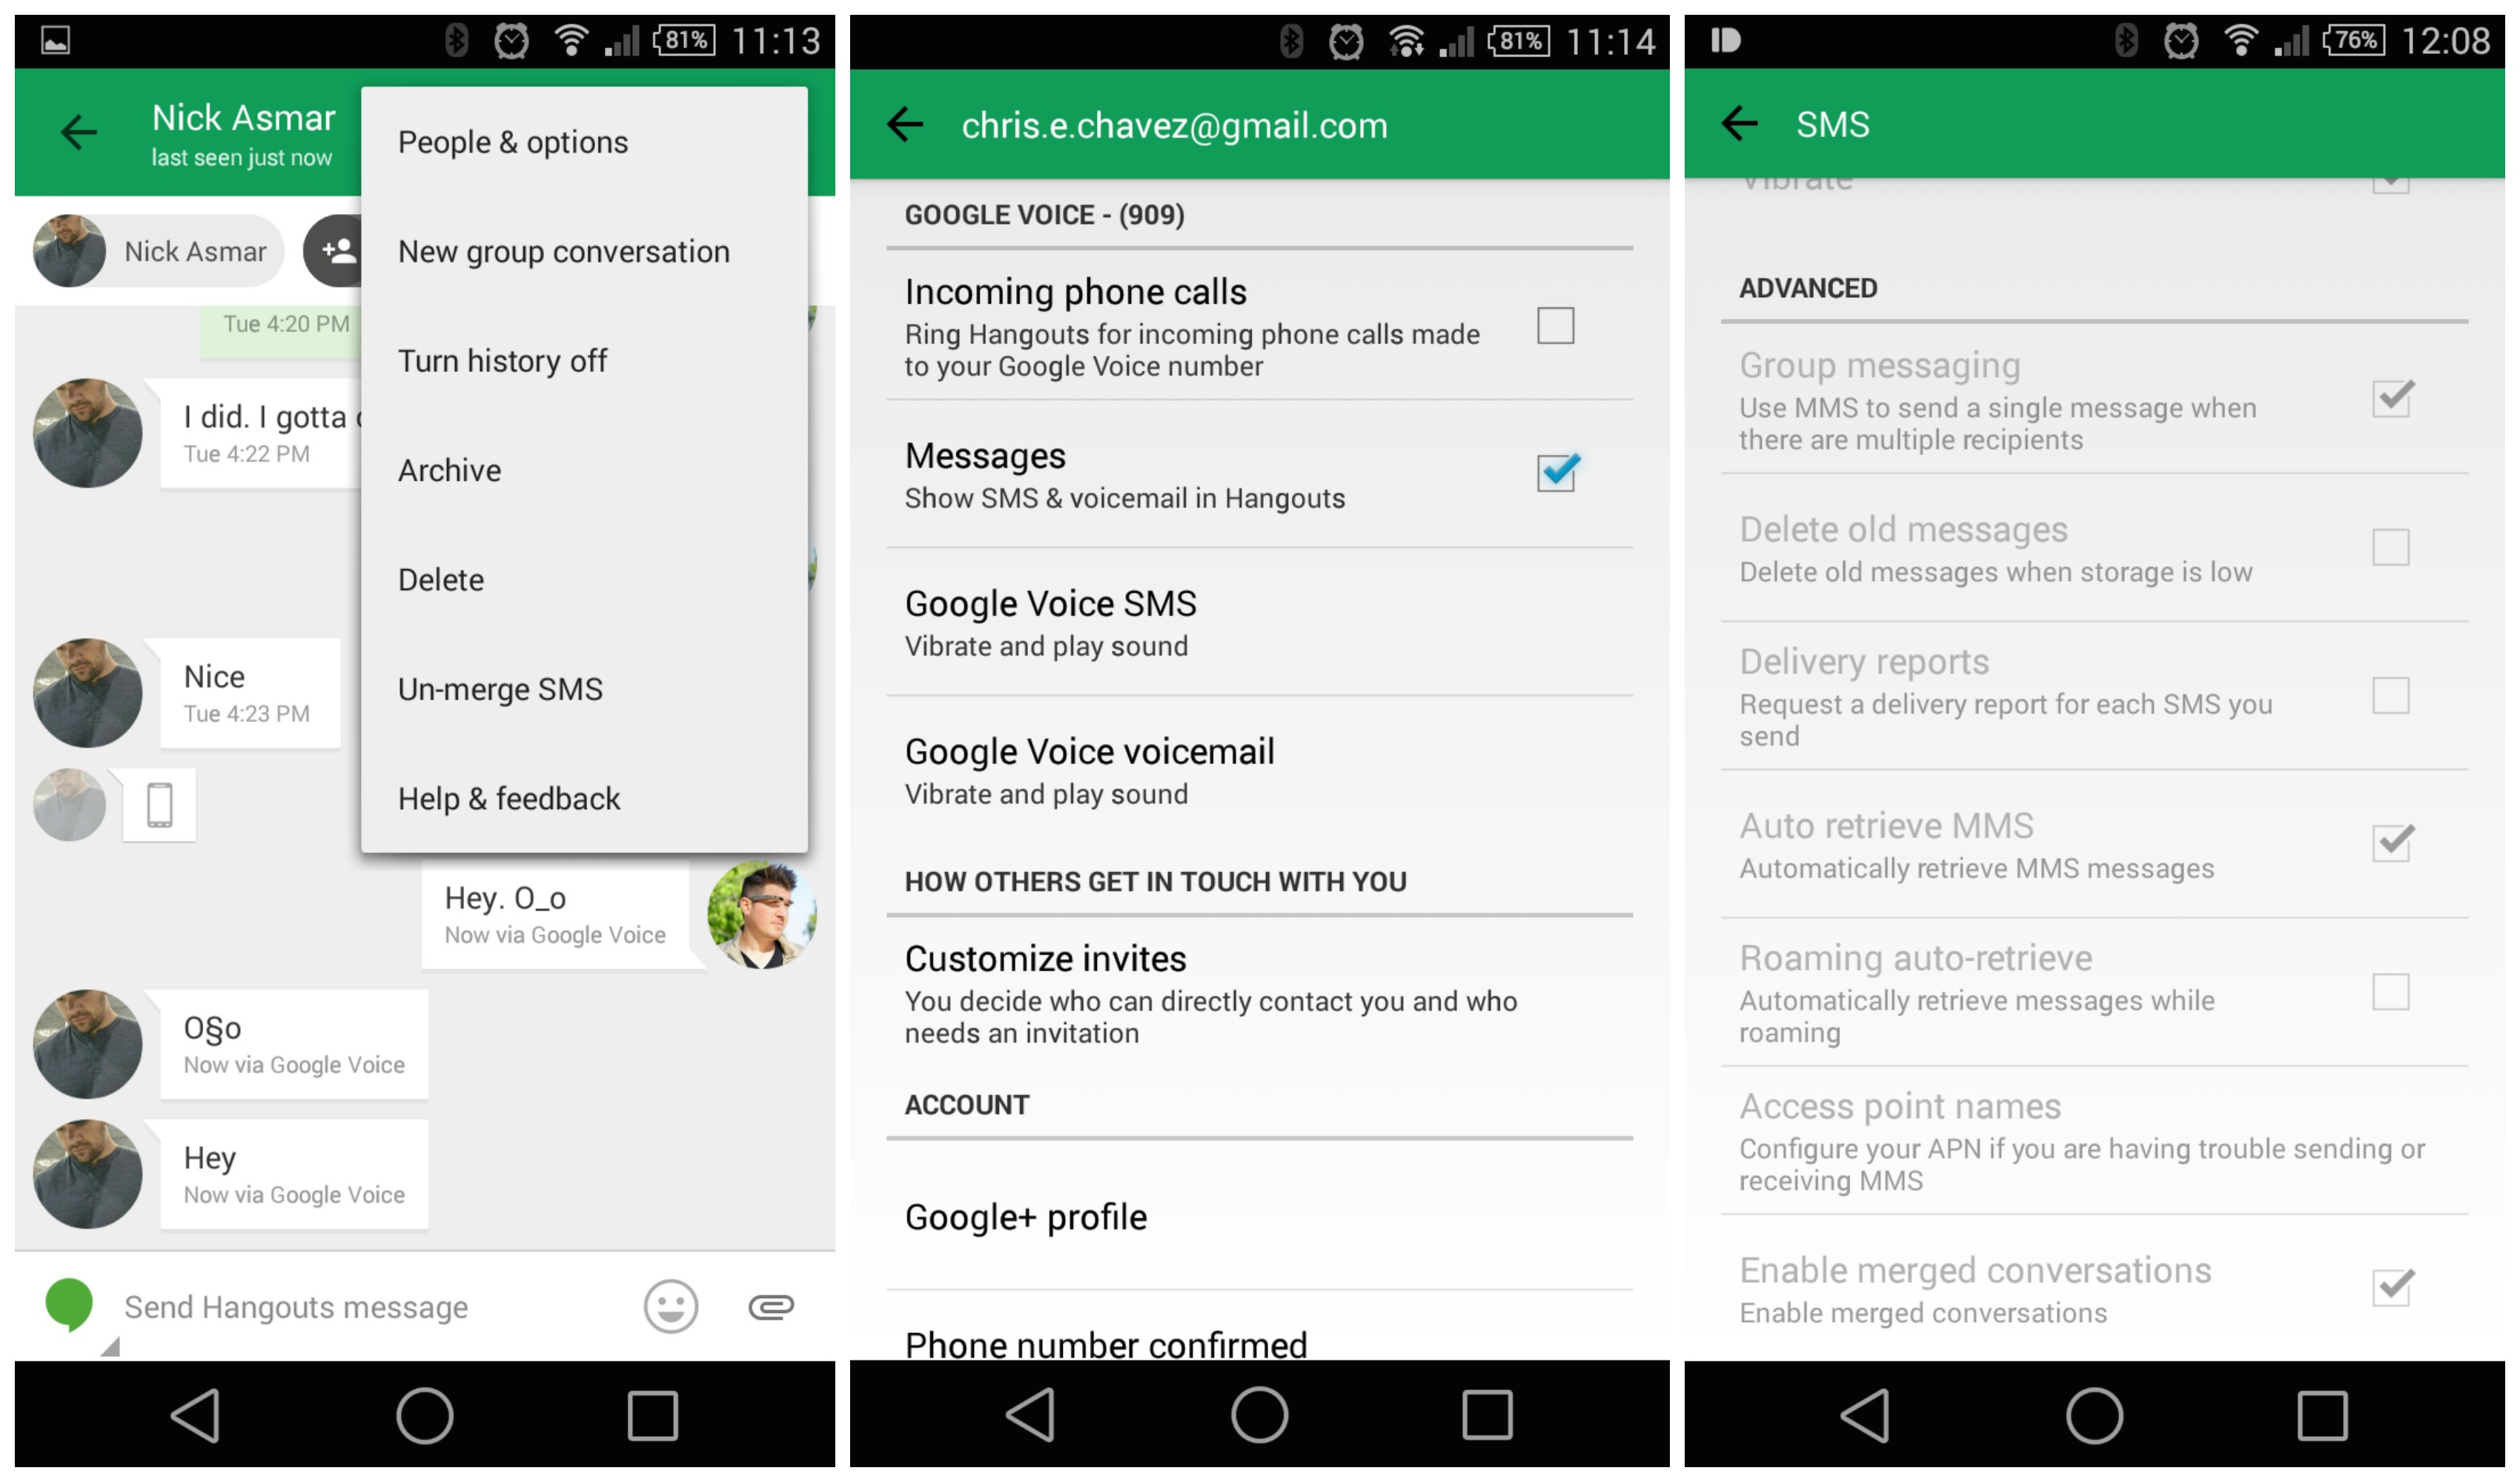 Switch between carrier or Google Voice numbers in Hangouts